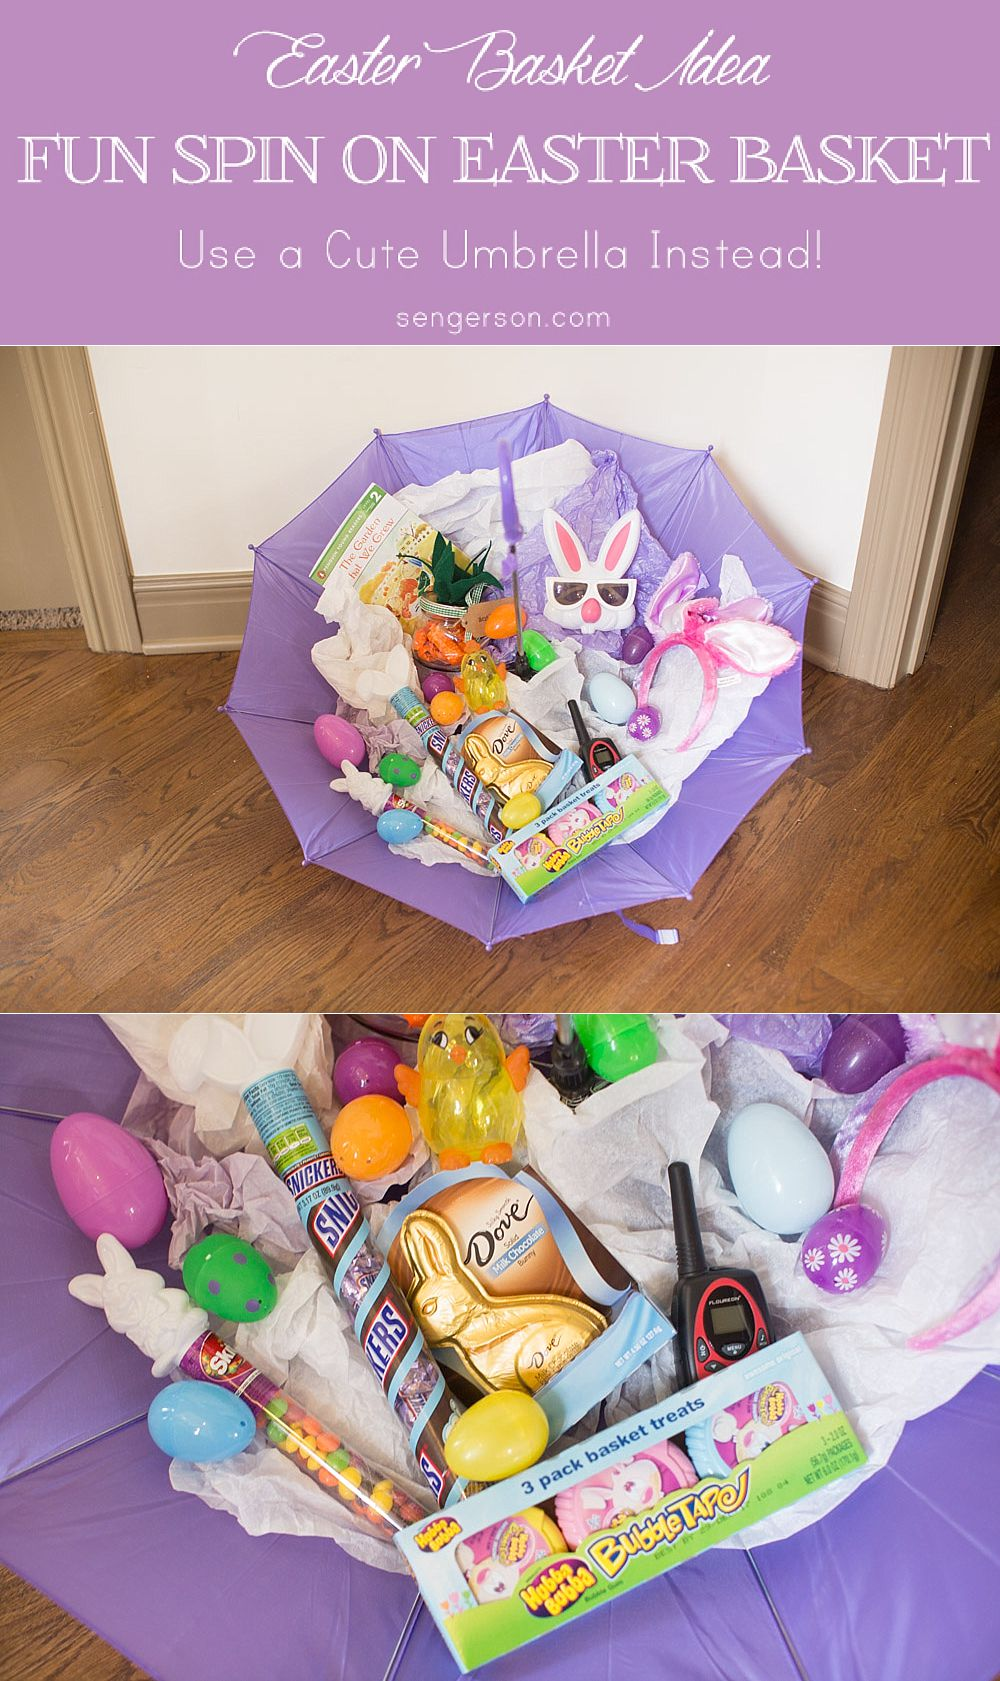 Fun twist on a traditional Easter basket. Fill an umbrella with Easter goodies!